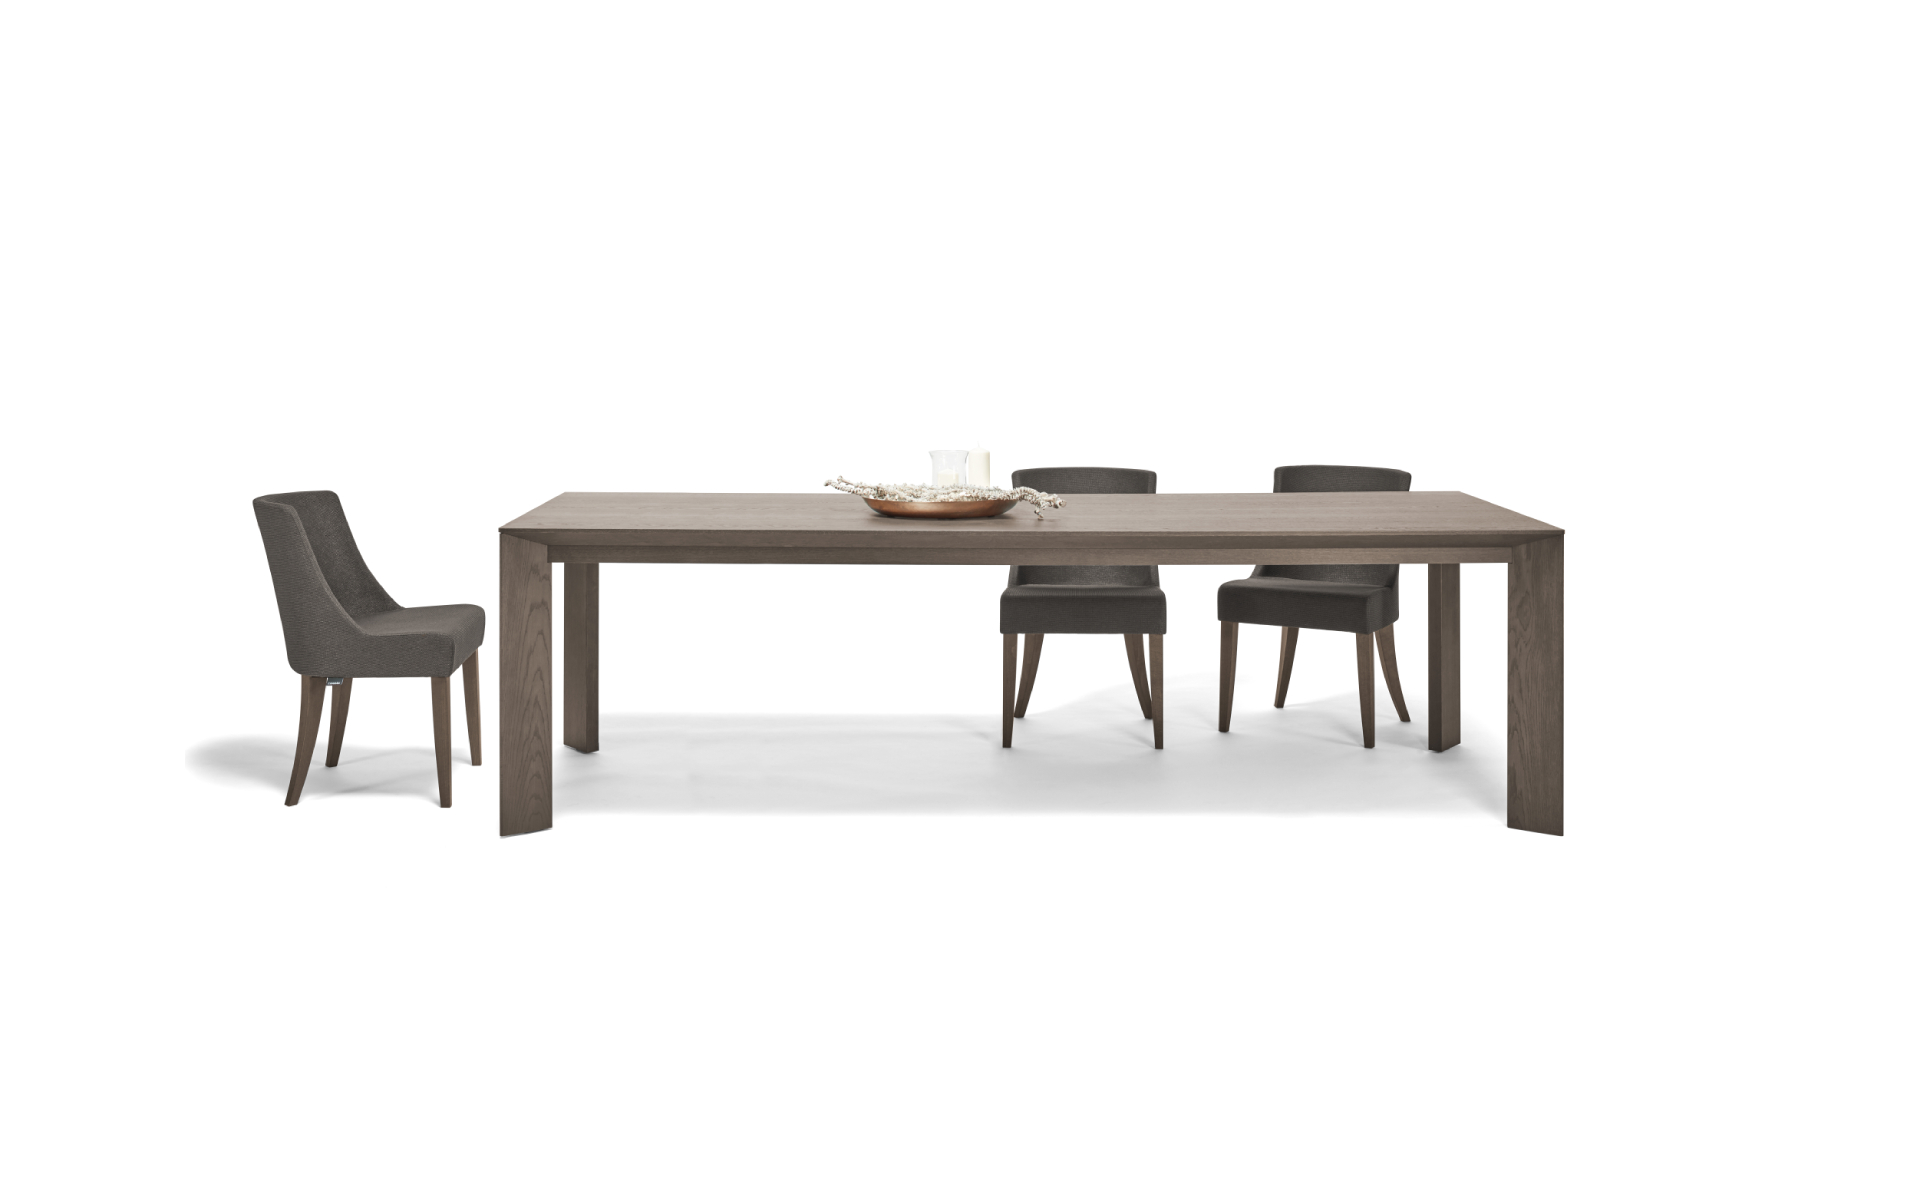 JS34 dining table